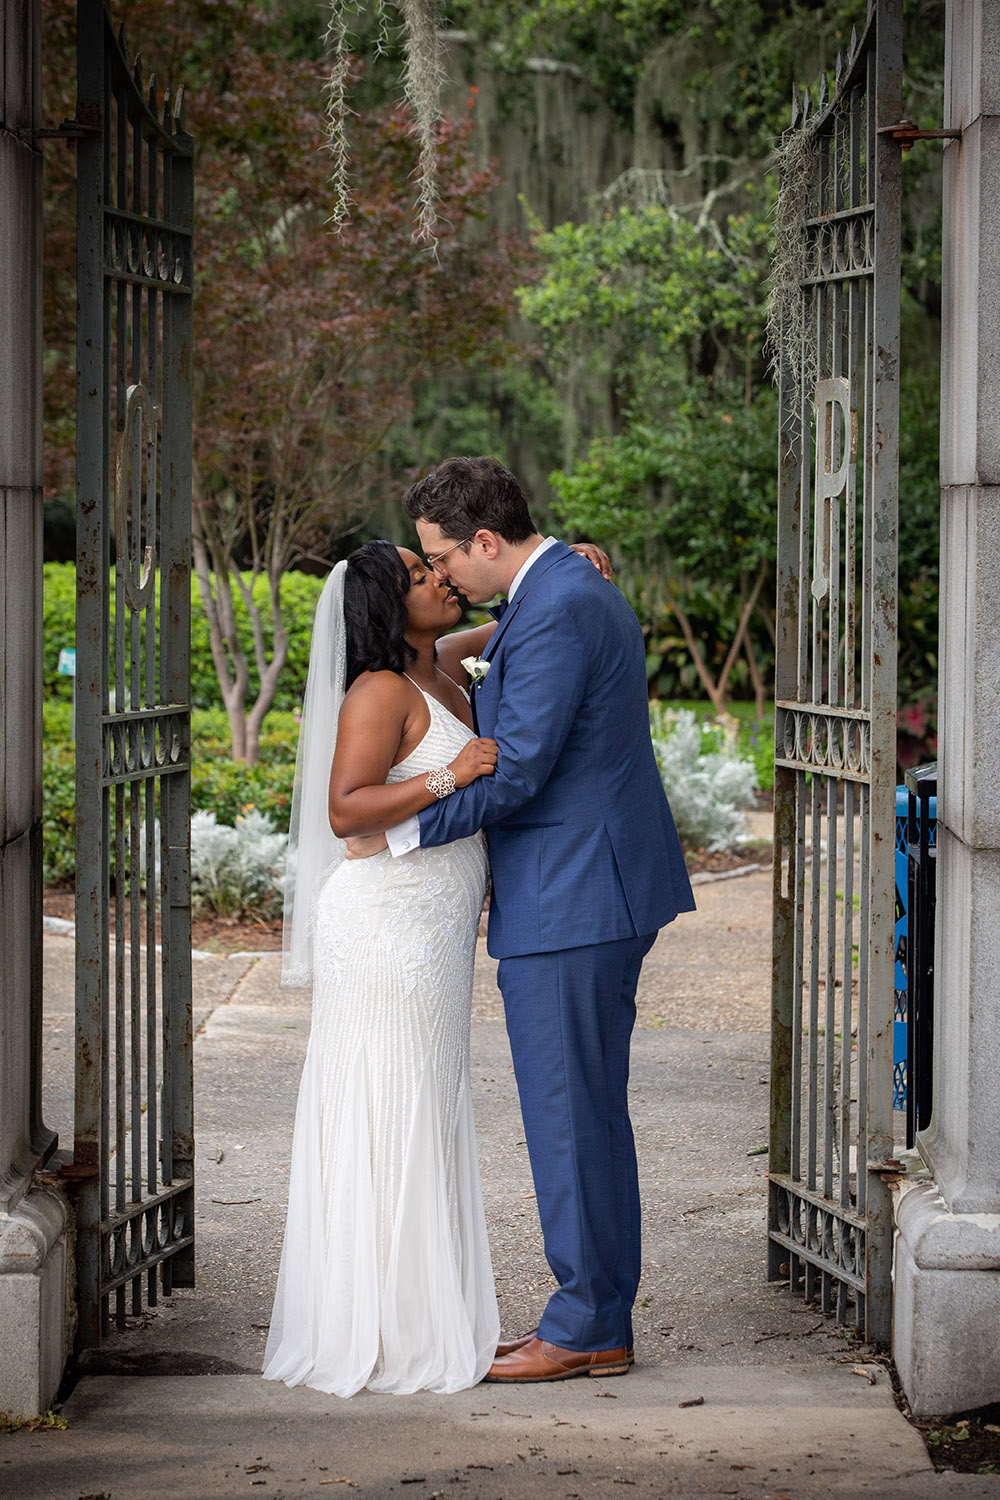 During a break in rain showers, Kiara and Michael were able to take a few photos across the street in City Park. Photo: Brian Jarreau Photography